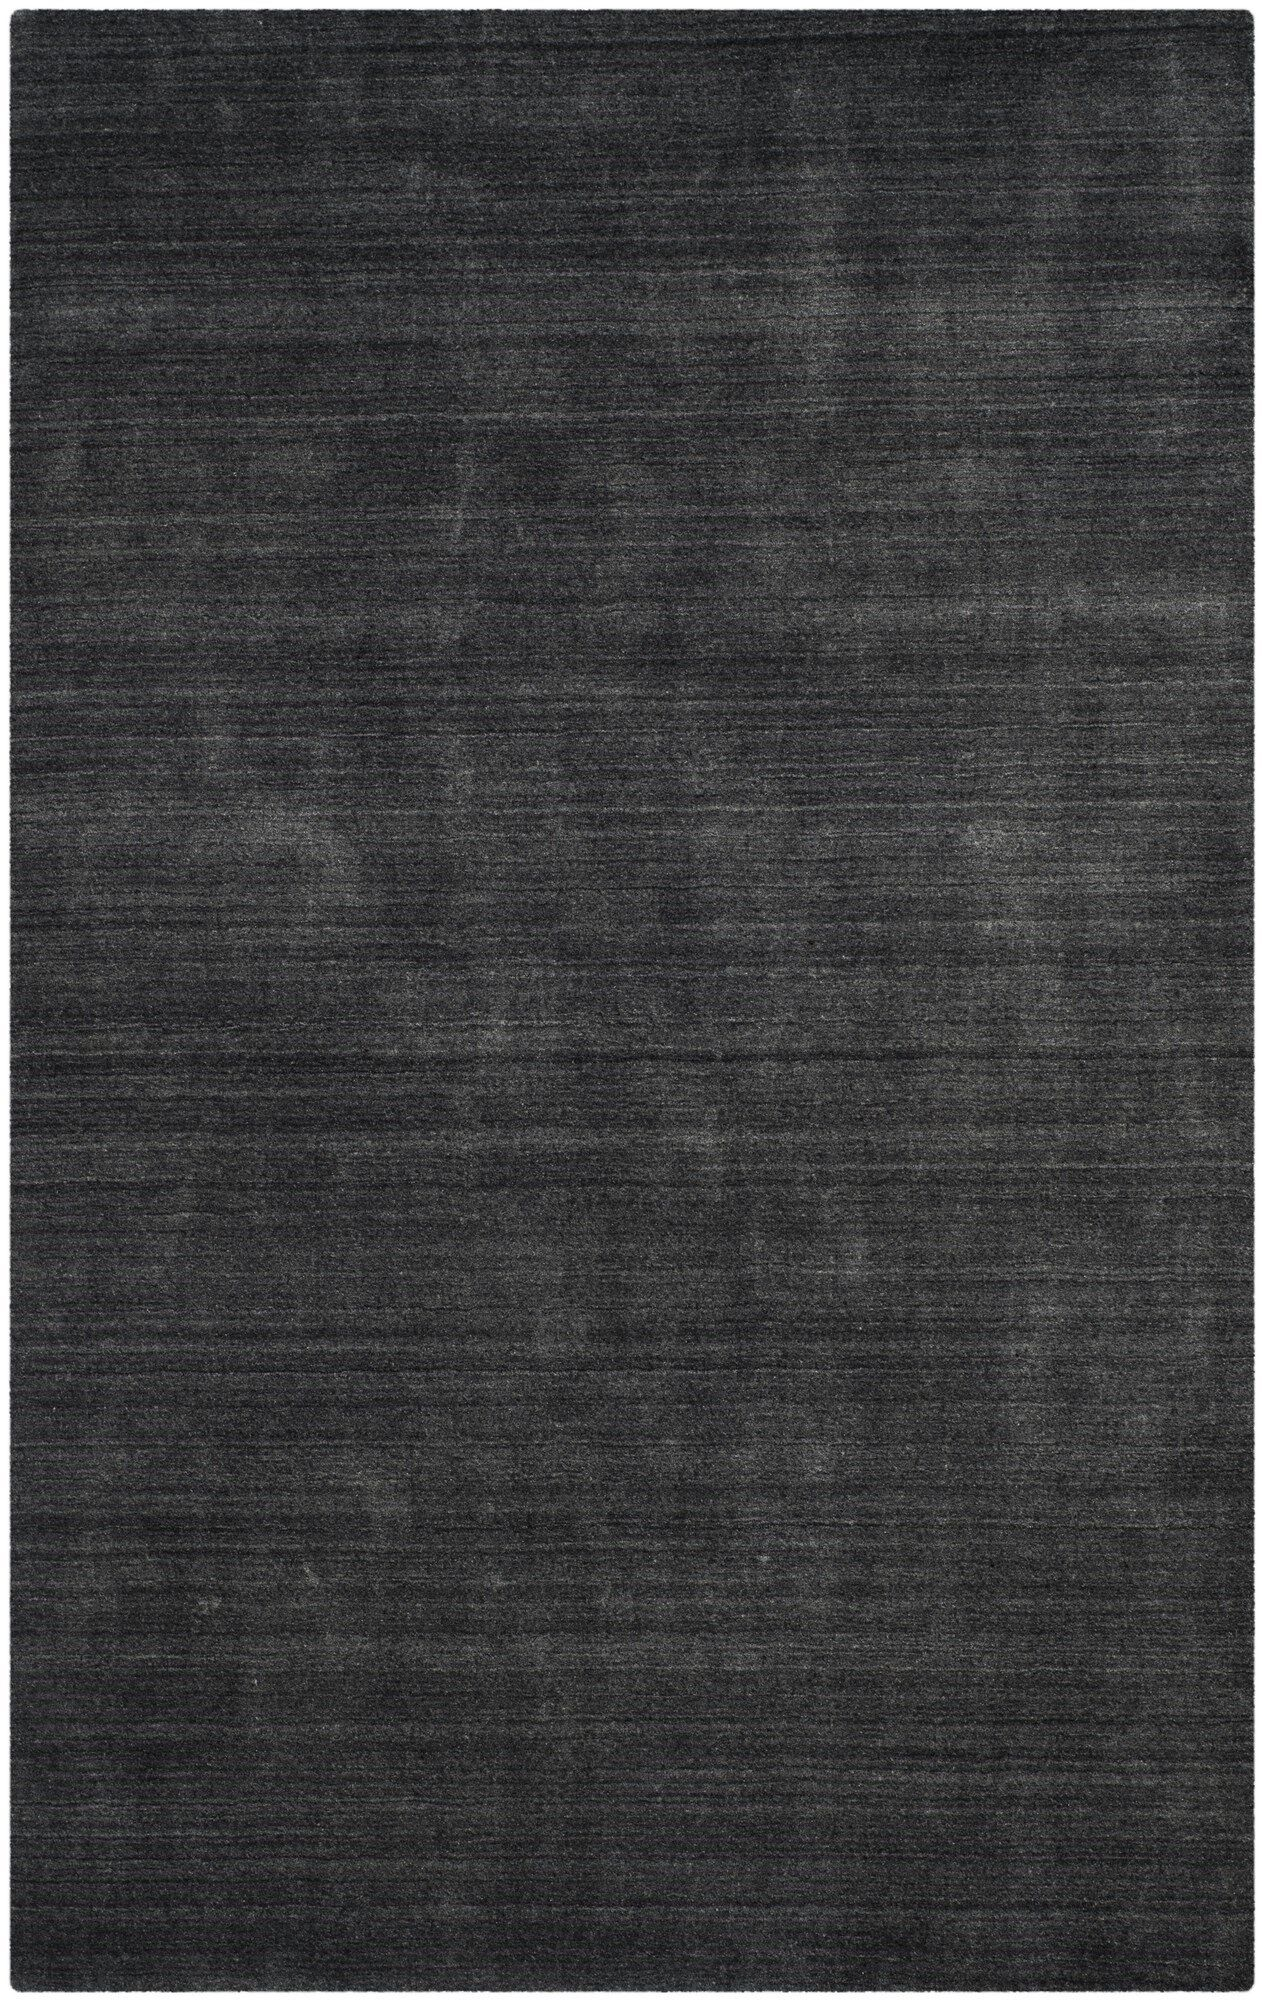 Leontine Hand-Loomed Charcoal Area Rug Rug Size: Rectangle 6' x 9'